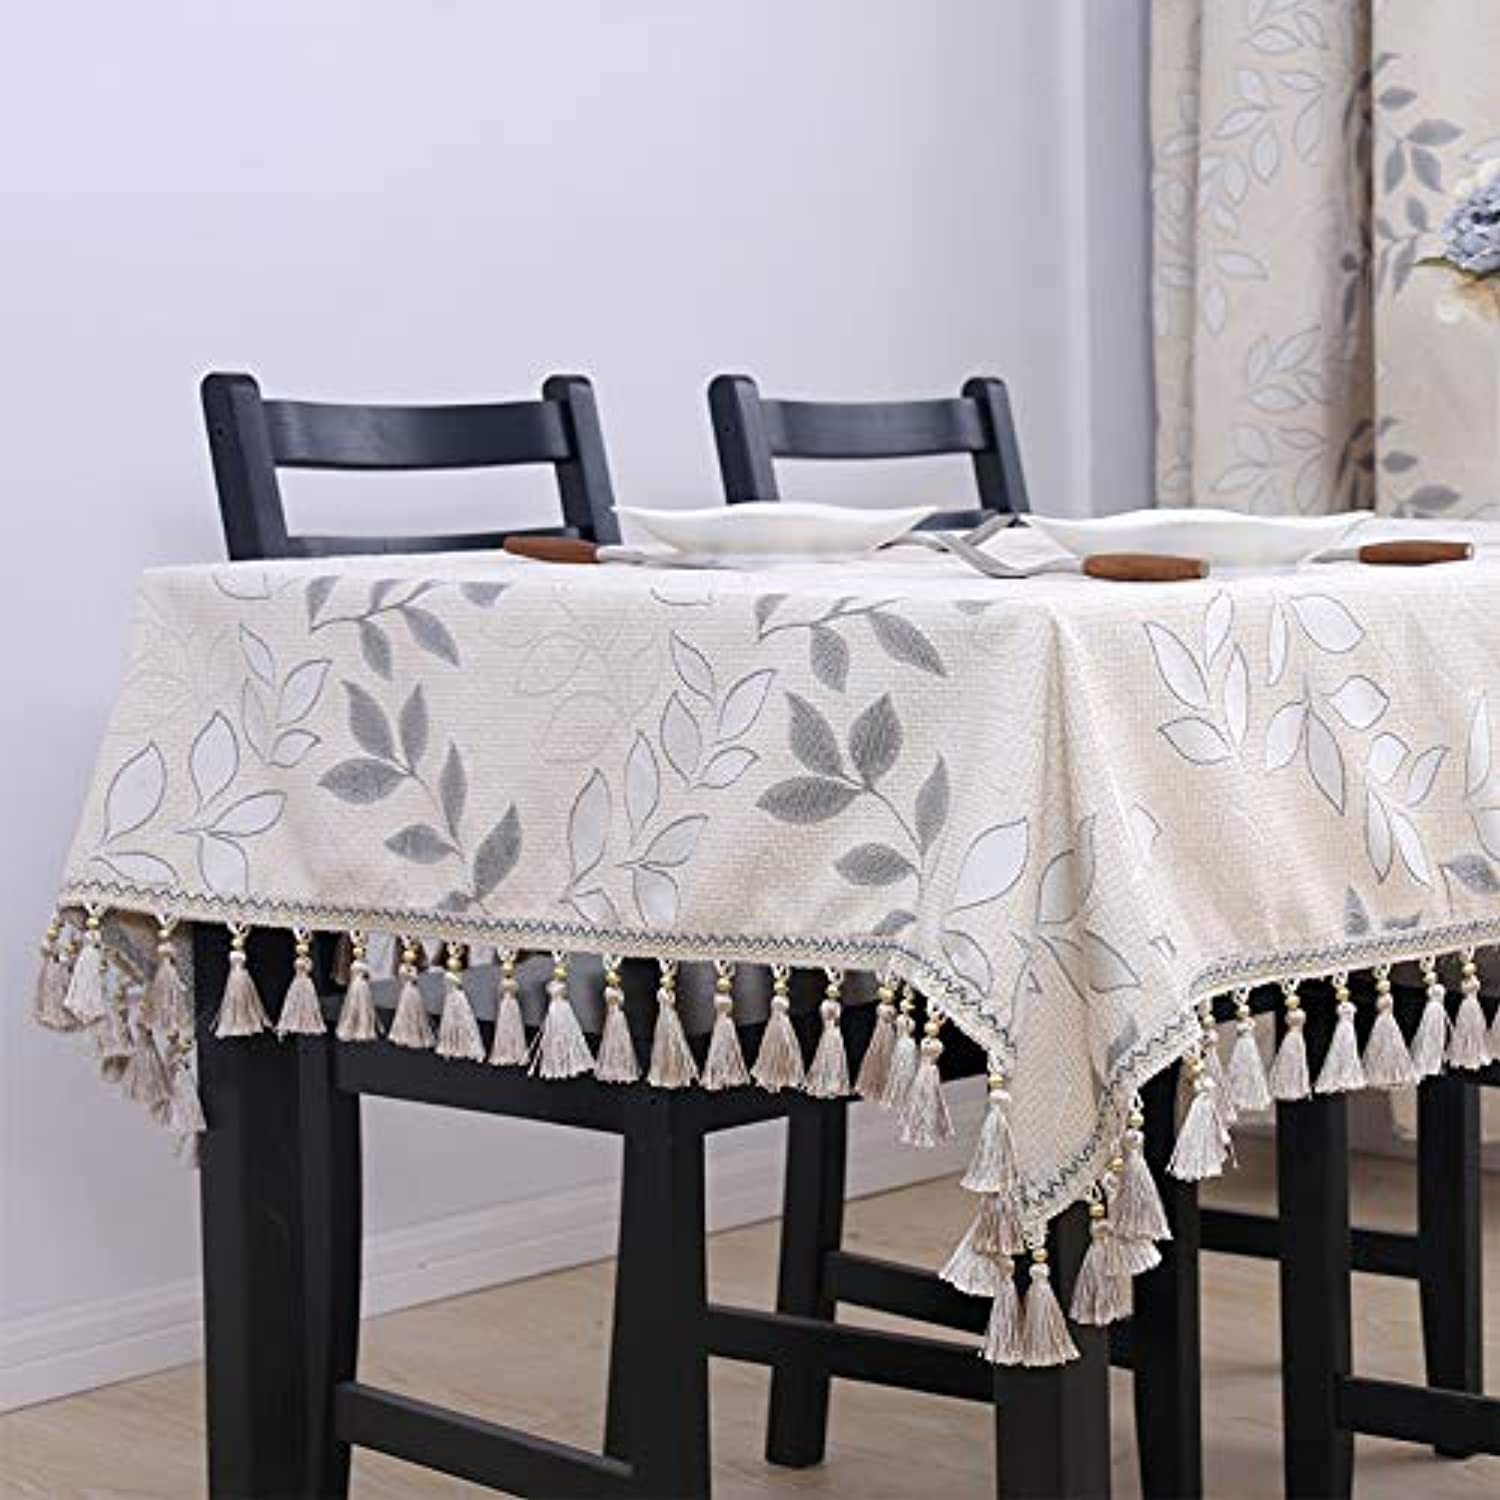 Tablecloth fabric placemat European table cloth rectangular living room household coffee table tablecloth square tablecloth round tablecloth, beige, 140160cm (including hanging ear 10cm each side)